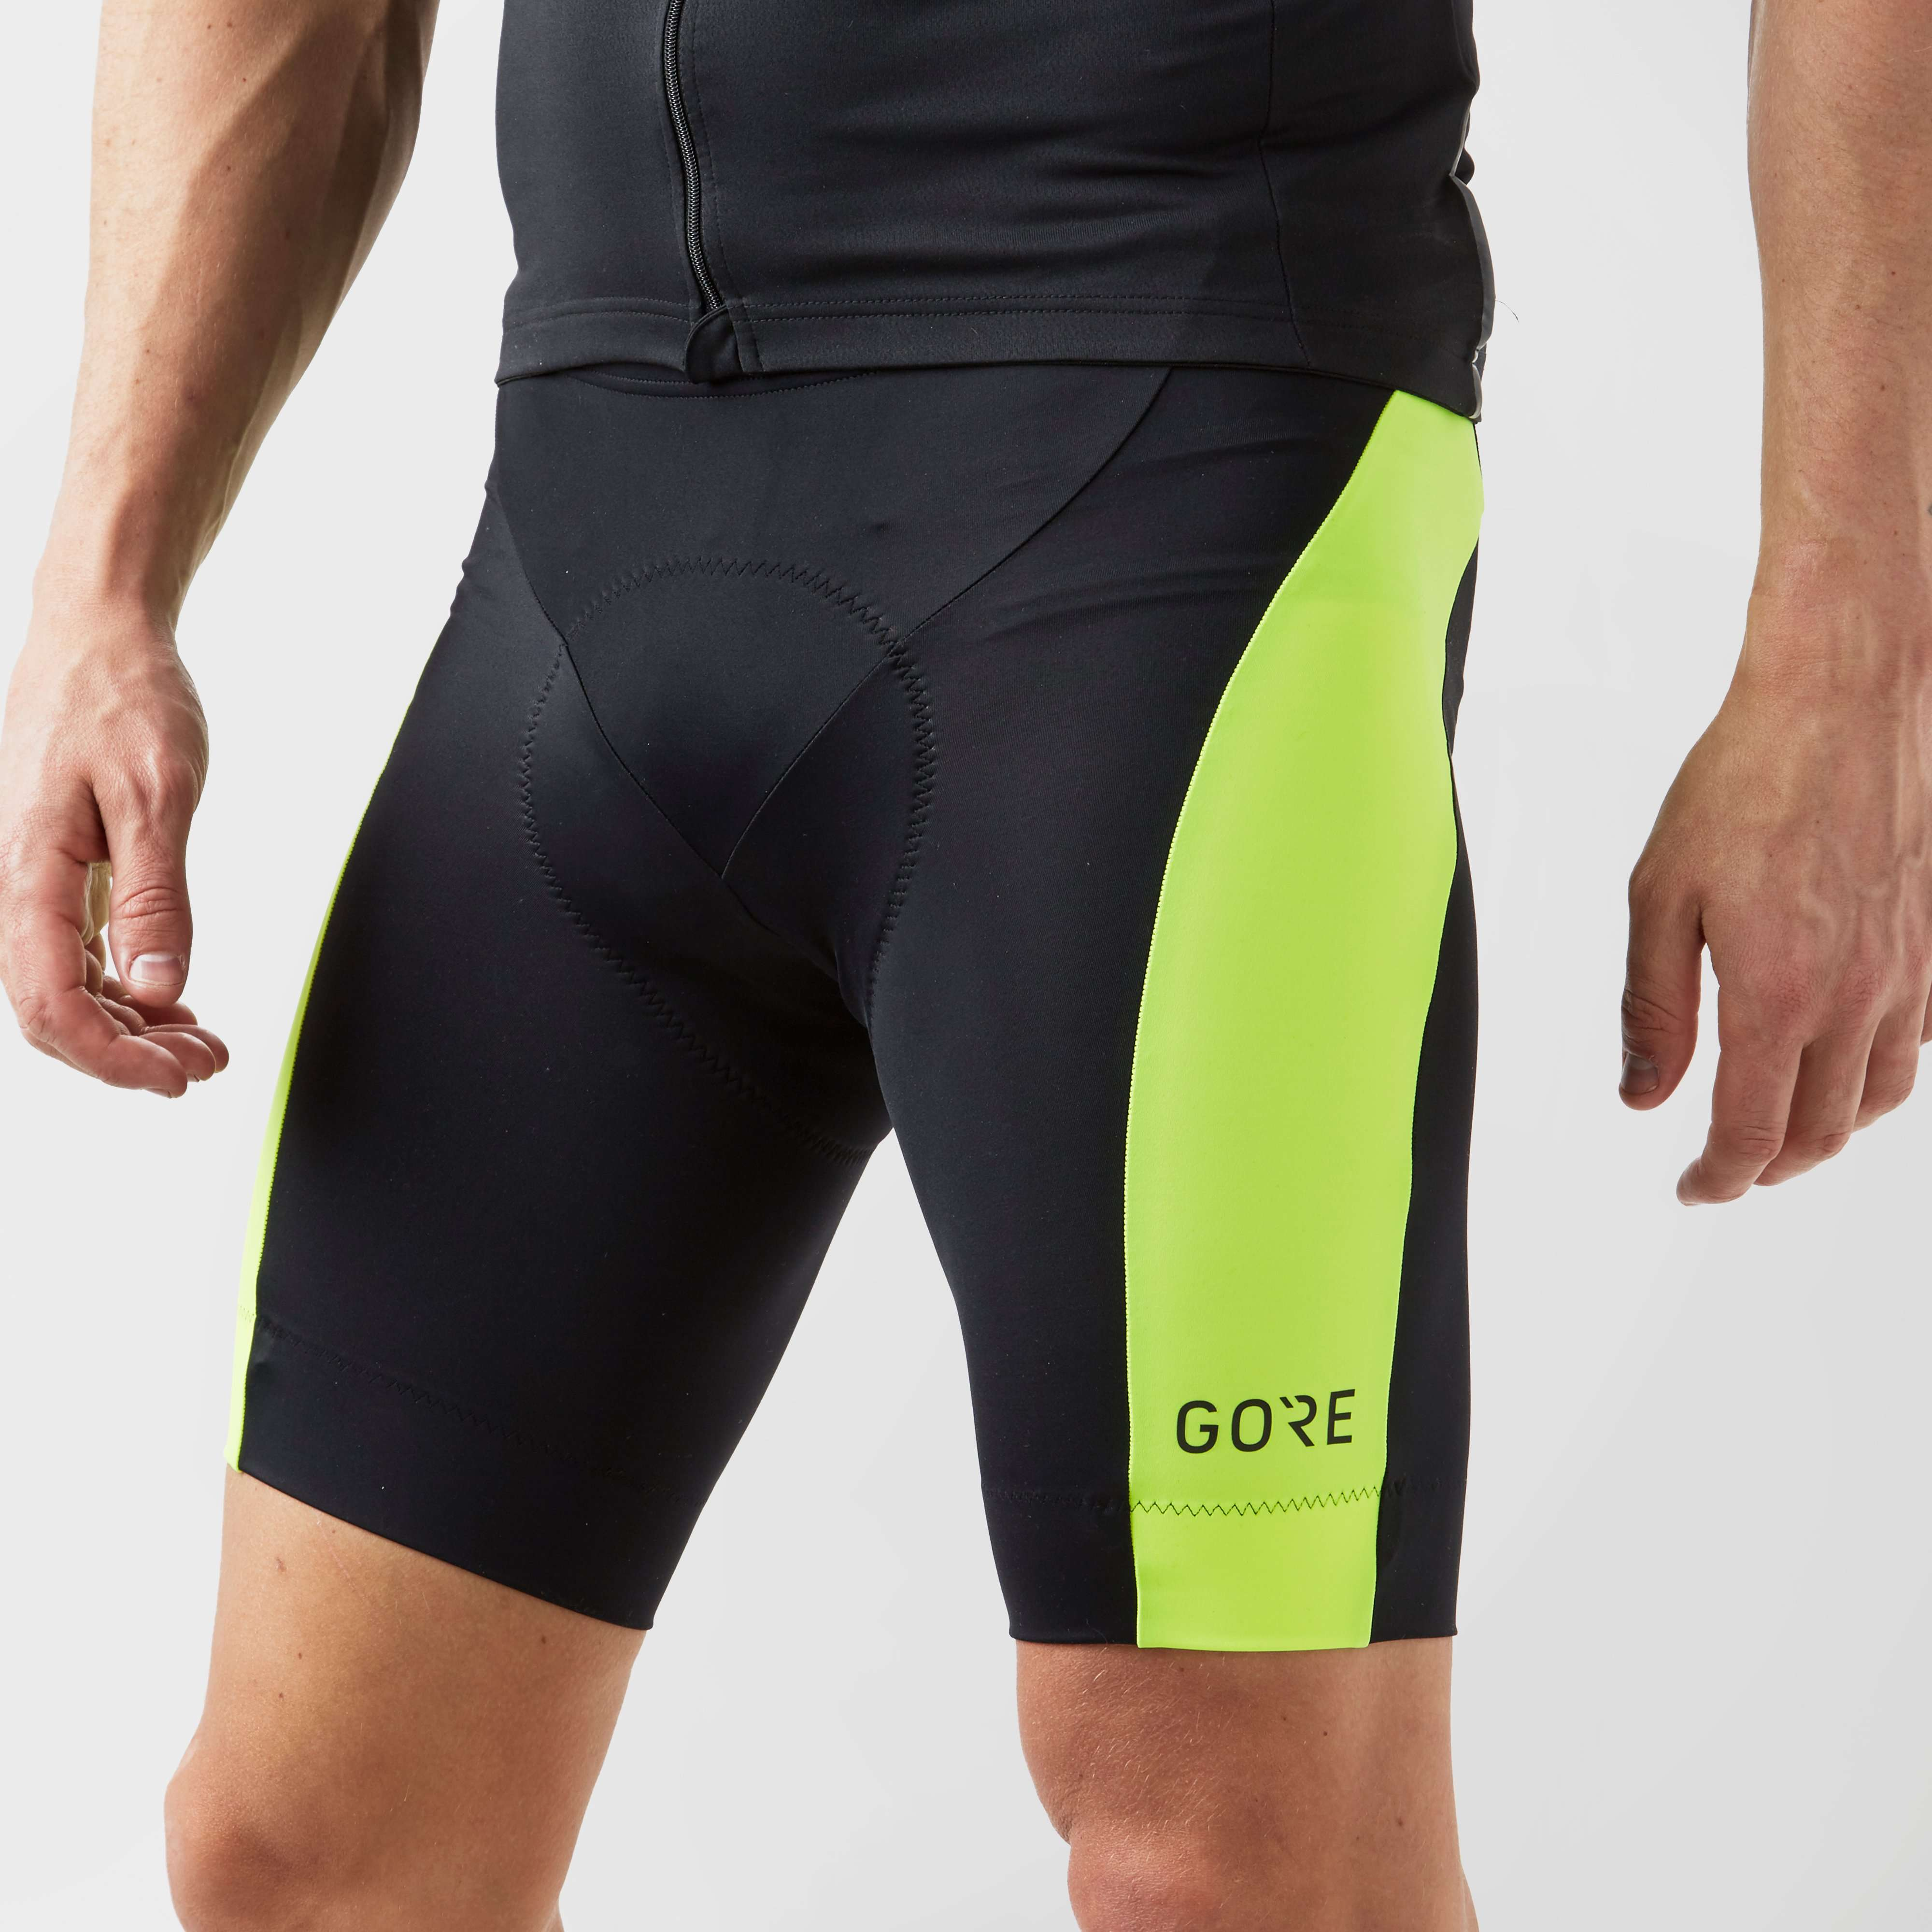 GORE Men's C3 Cycling Short Tights+